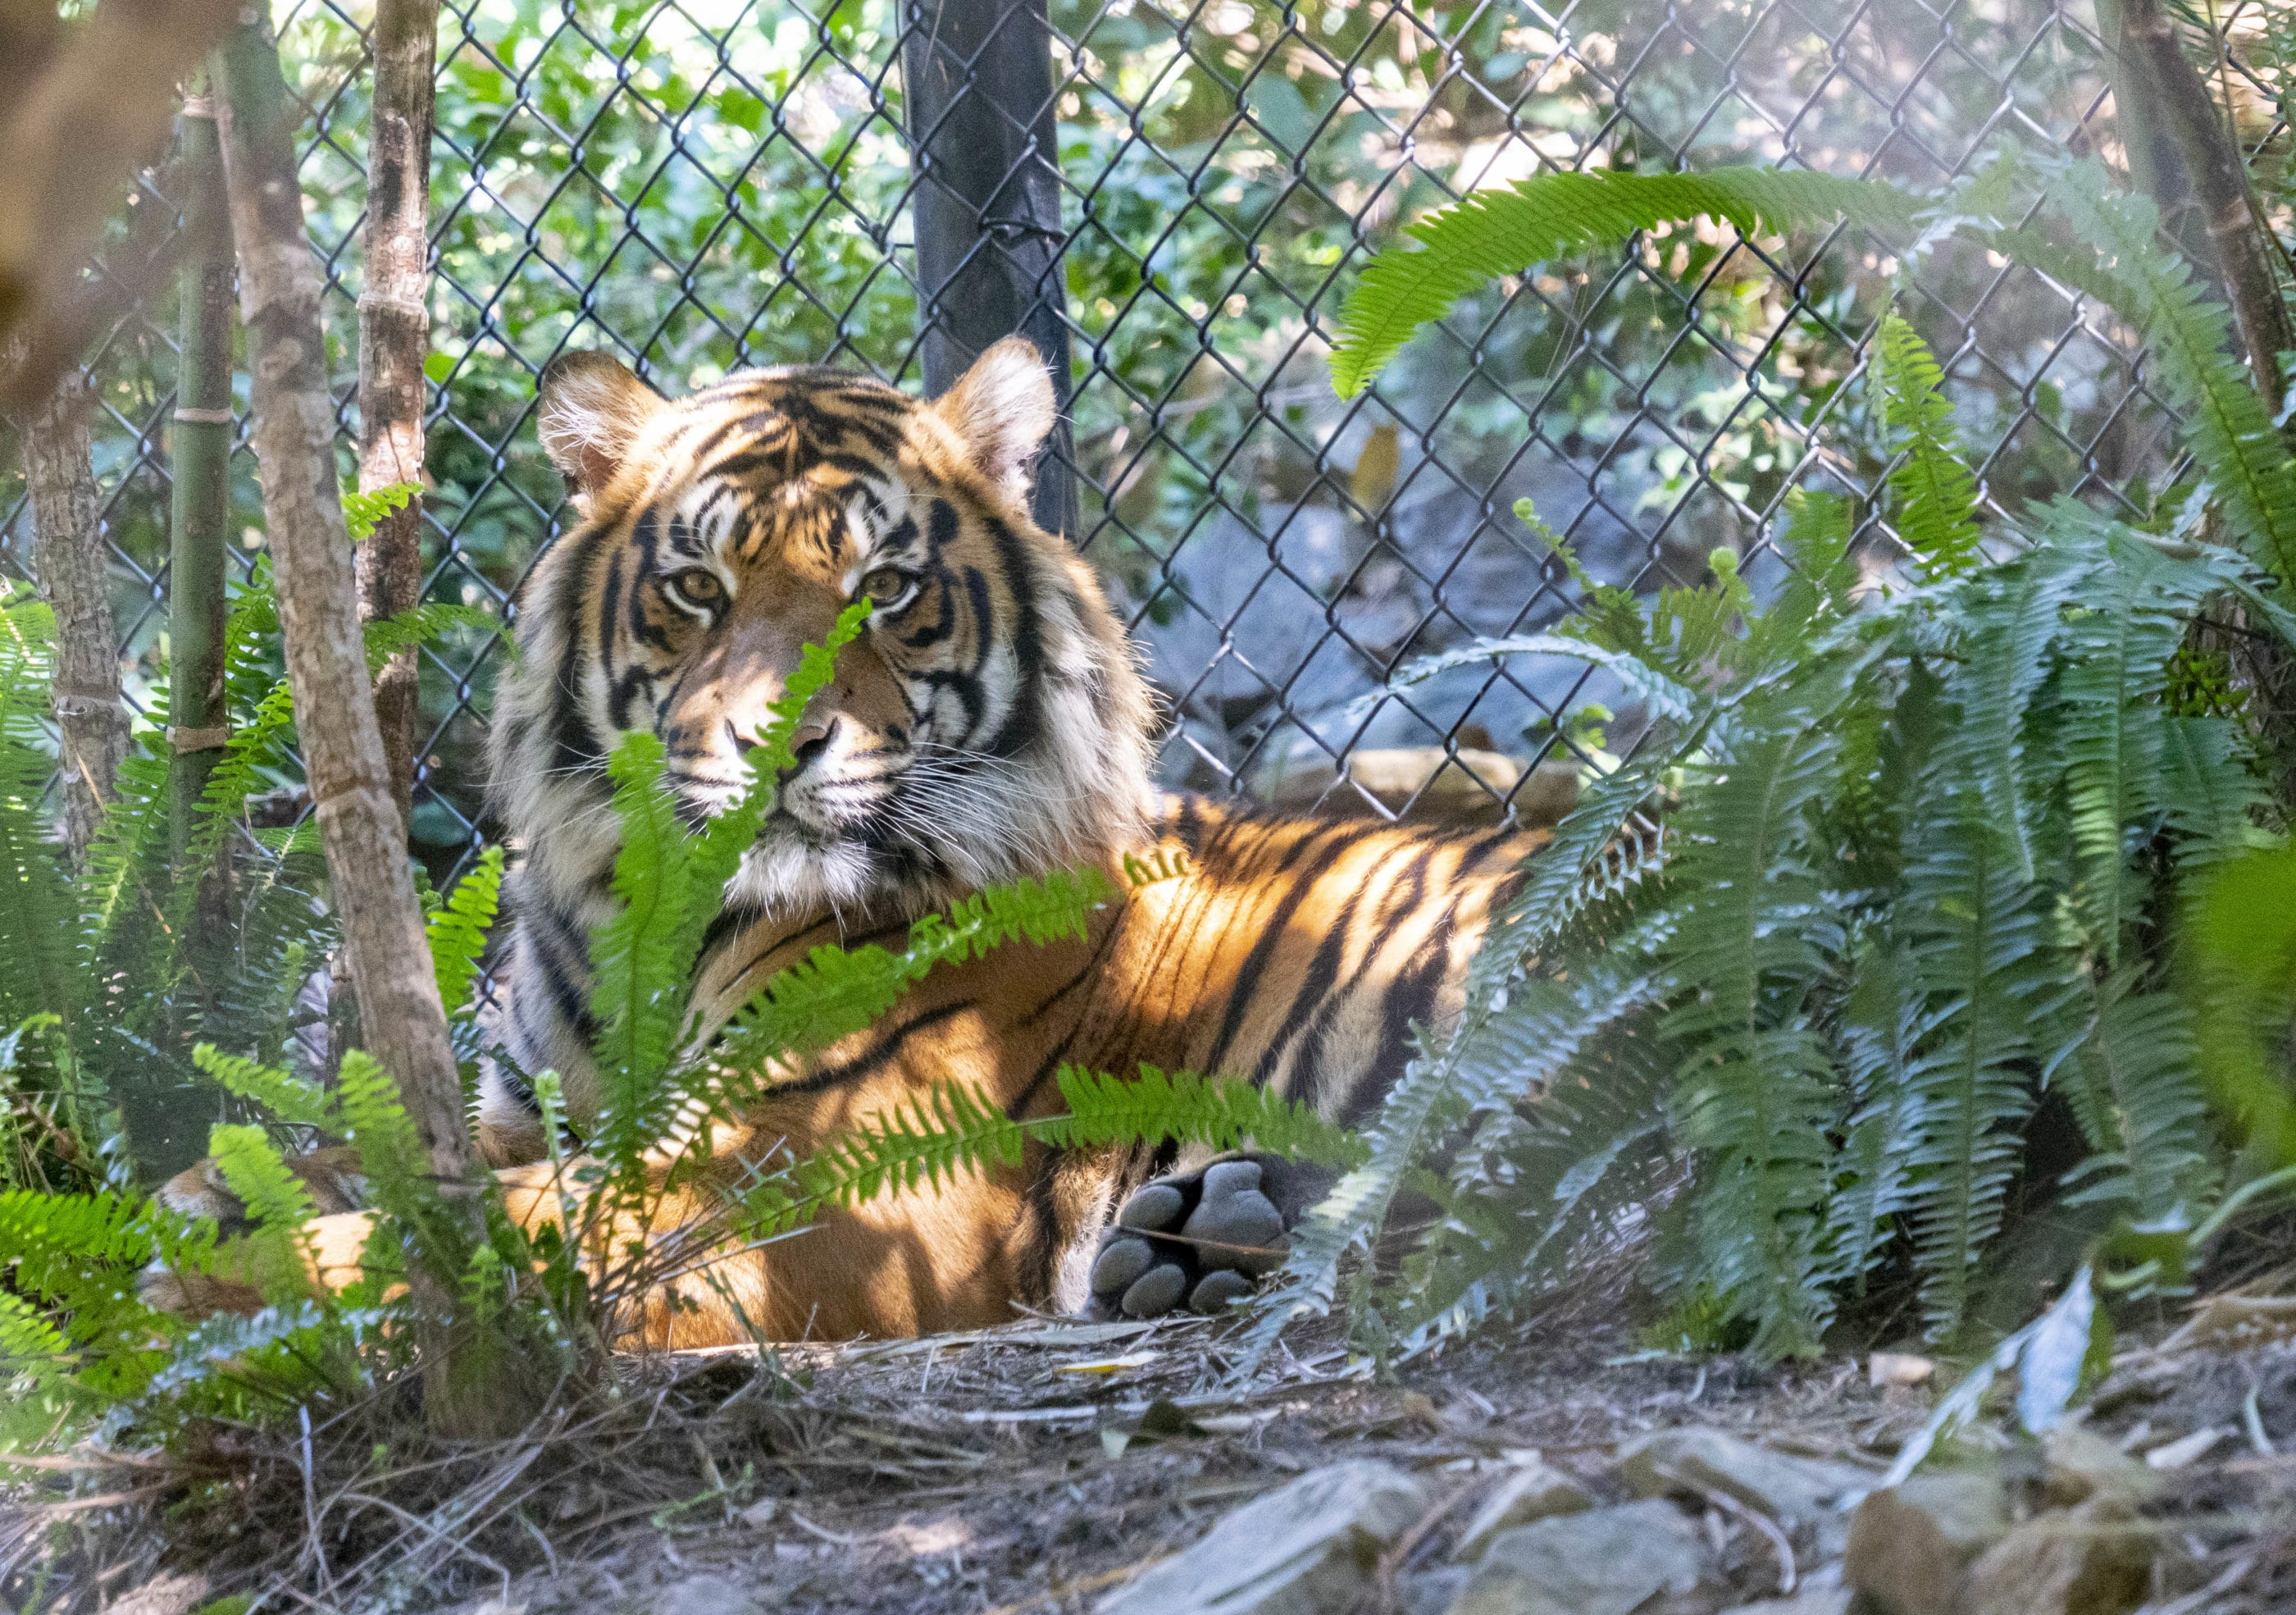 A tiger relaxes in the shade at Tiger Trail inside San Diego Zoo Safari Park.